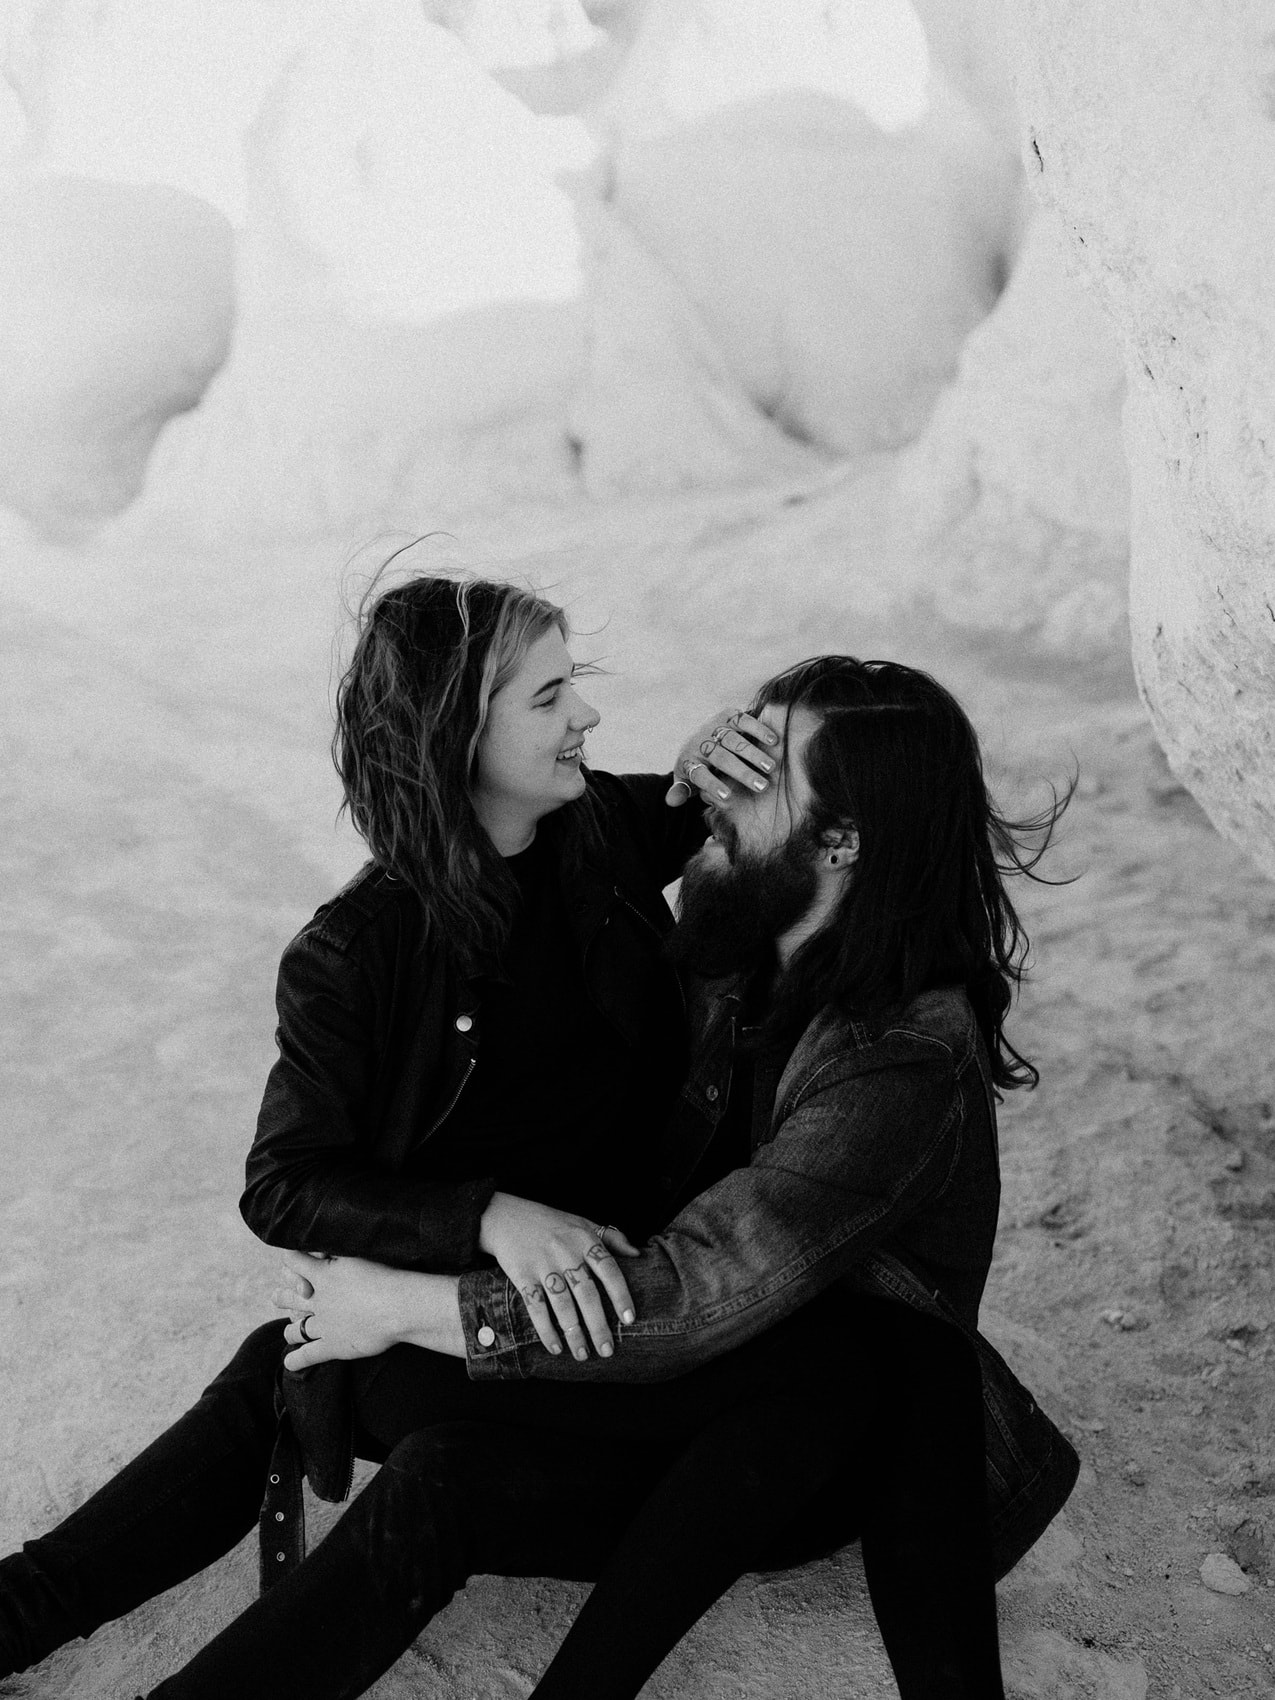 Frequently Asked Questions for Levi Tijerina - Denver Wedding Photographer